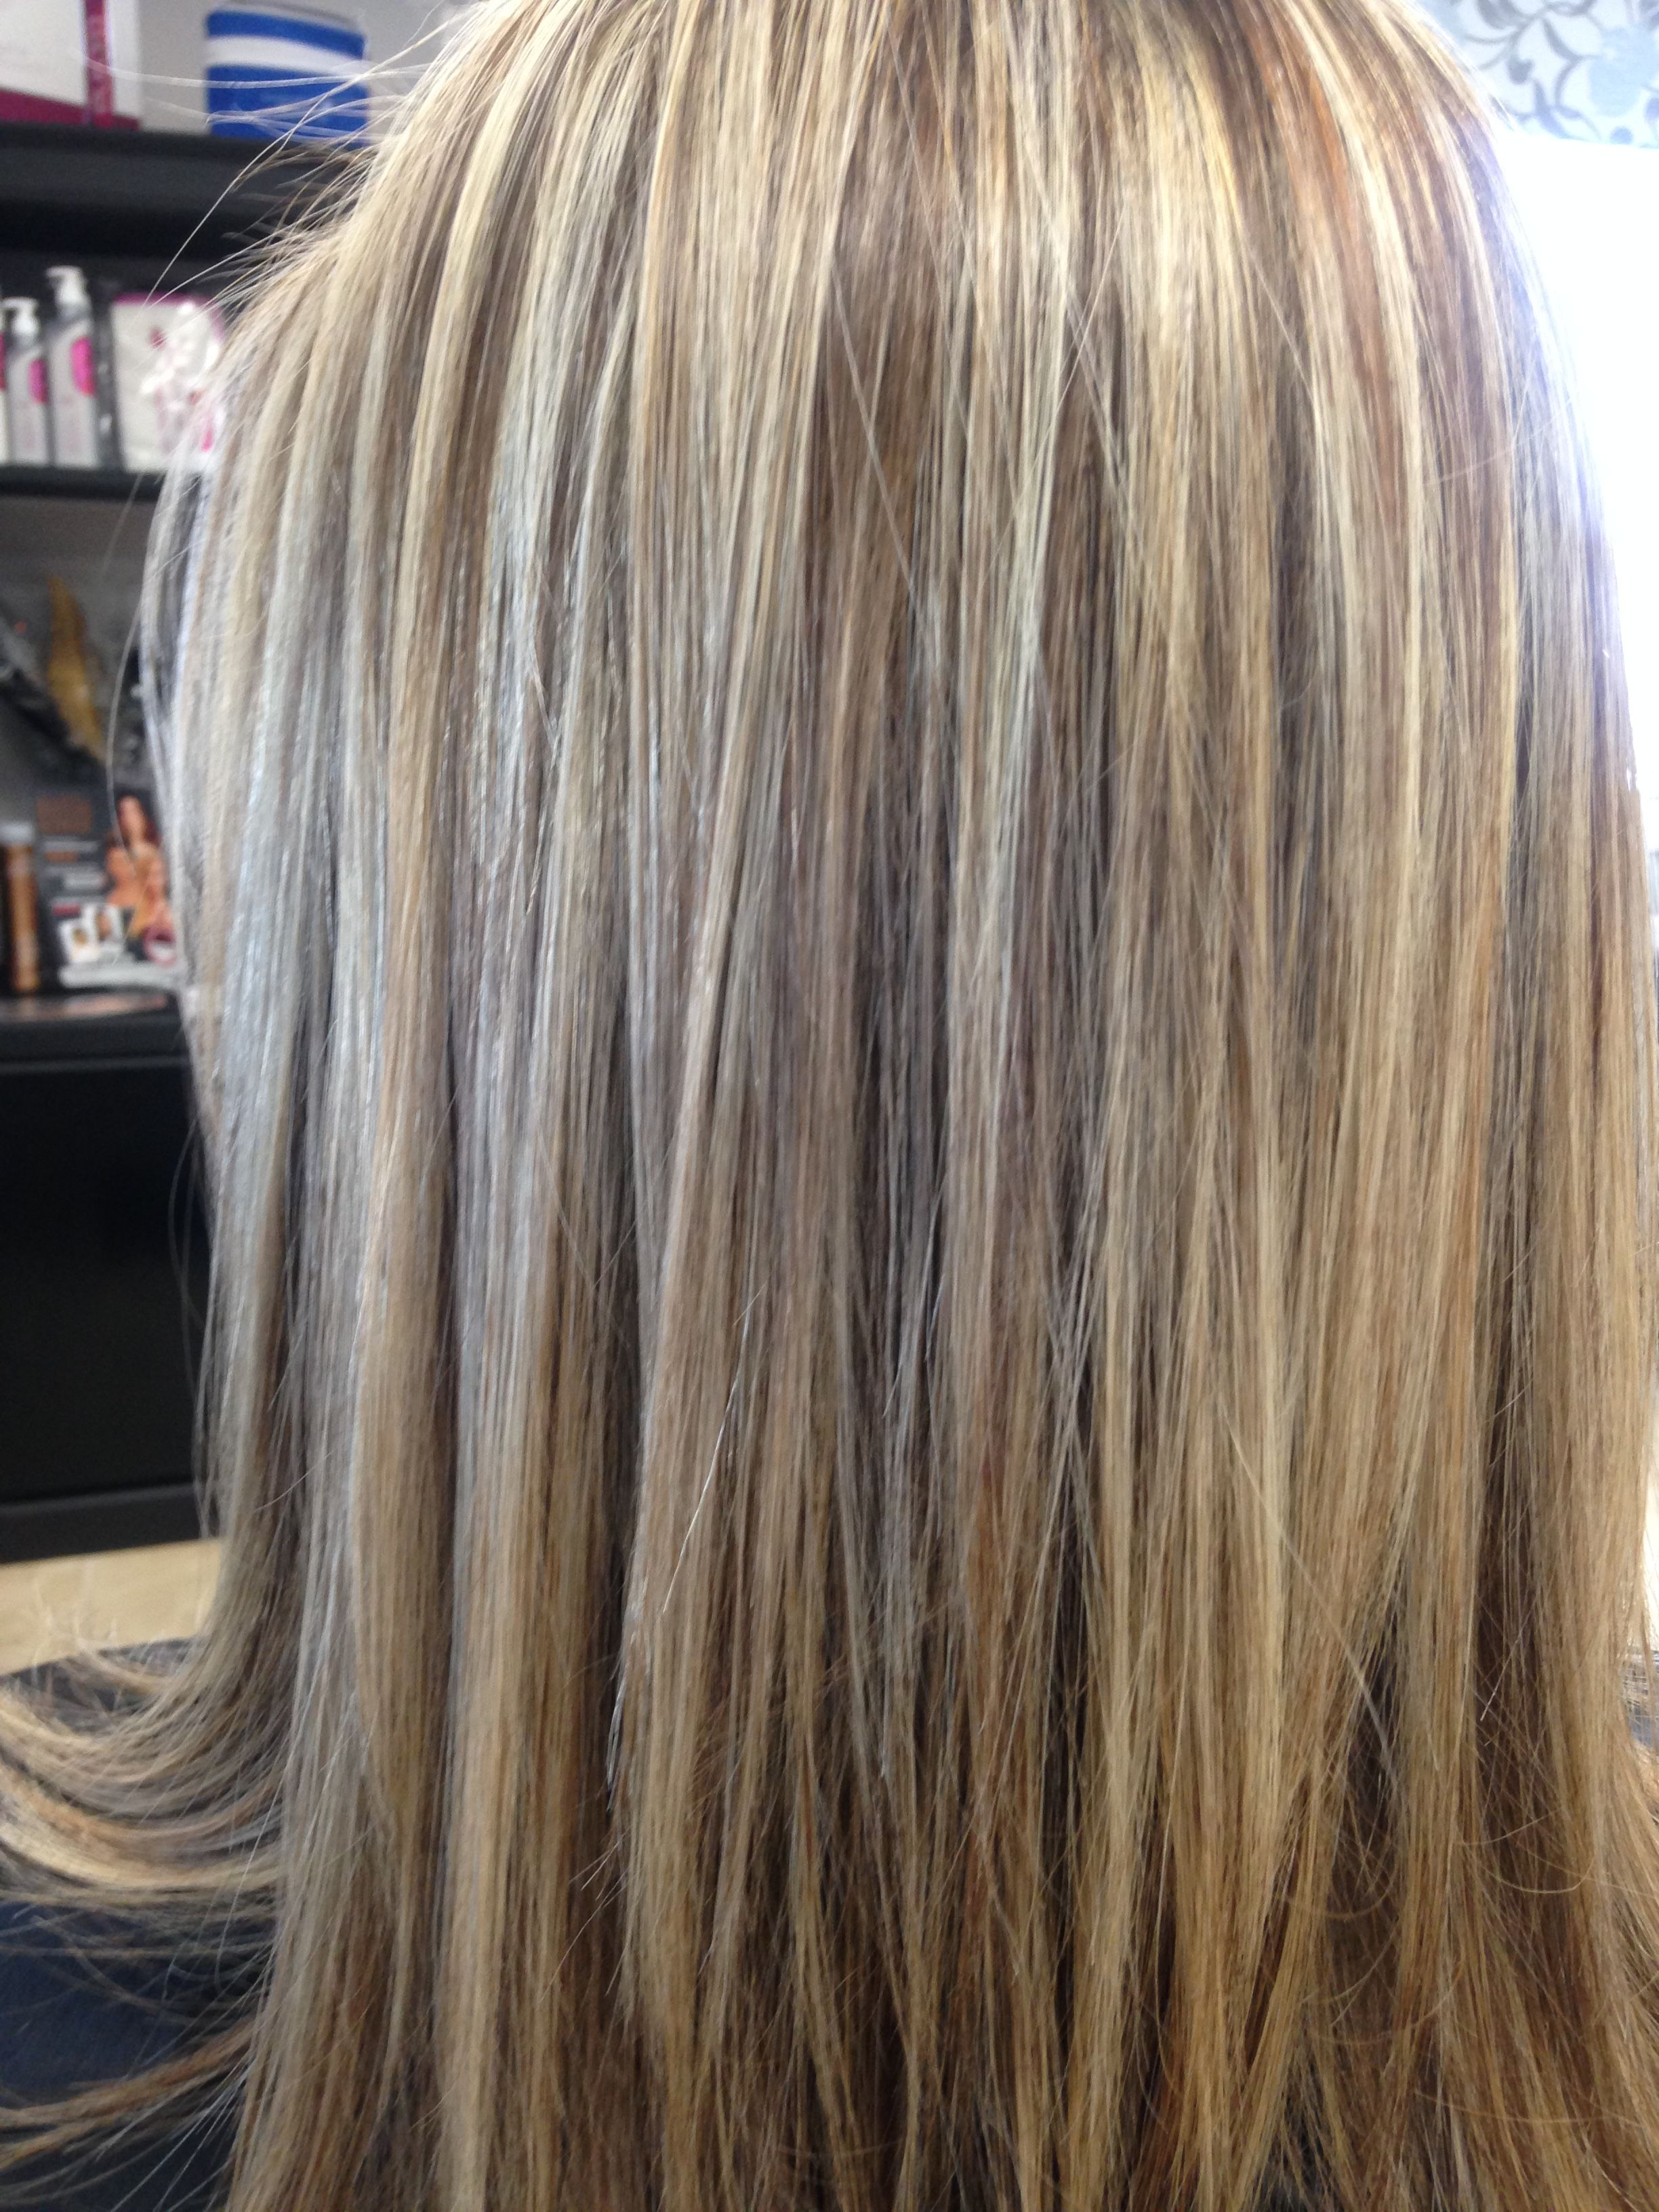 Highlights Blond Highlights And Lowlights Hair411 My Work In 2019